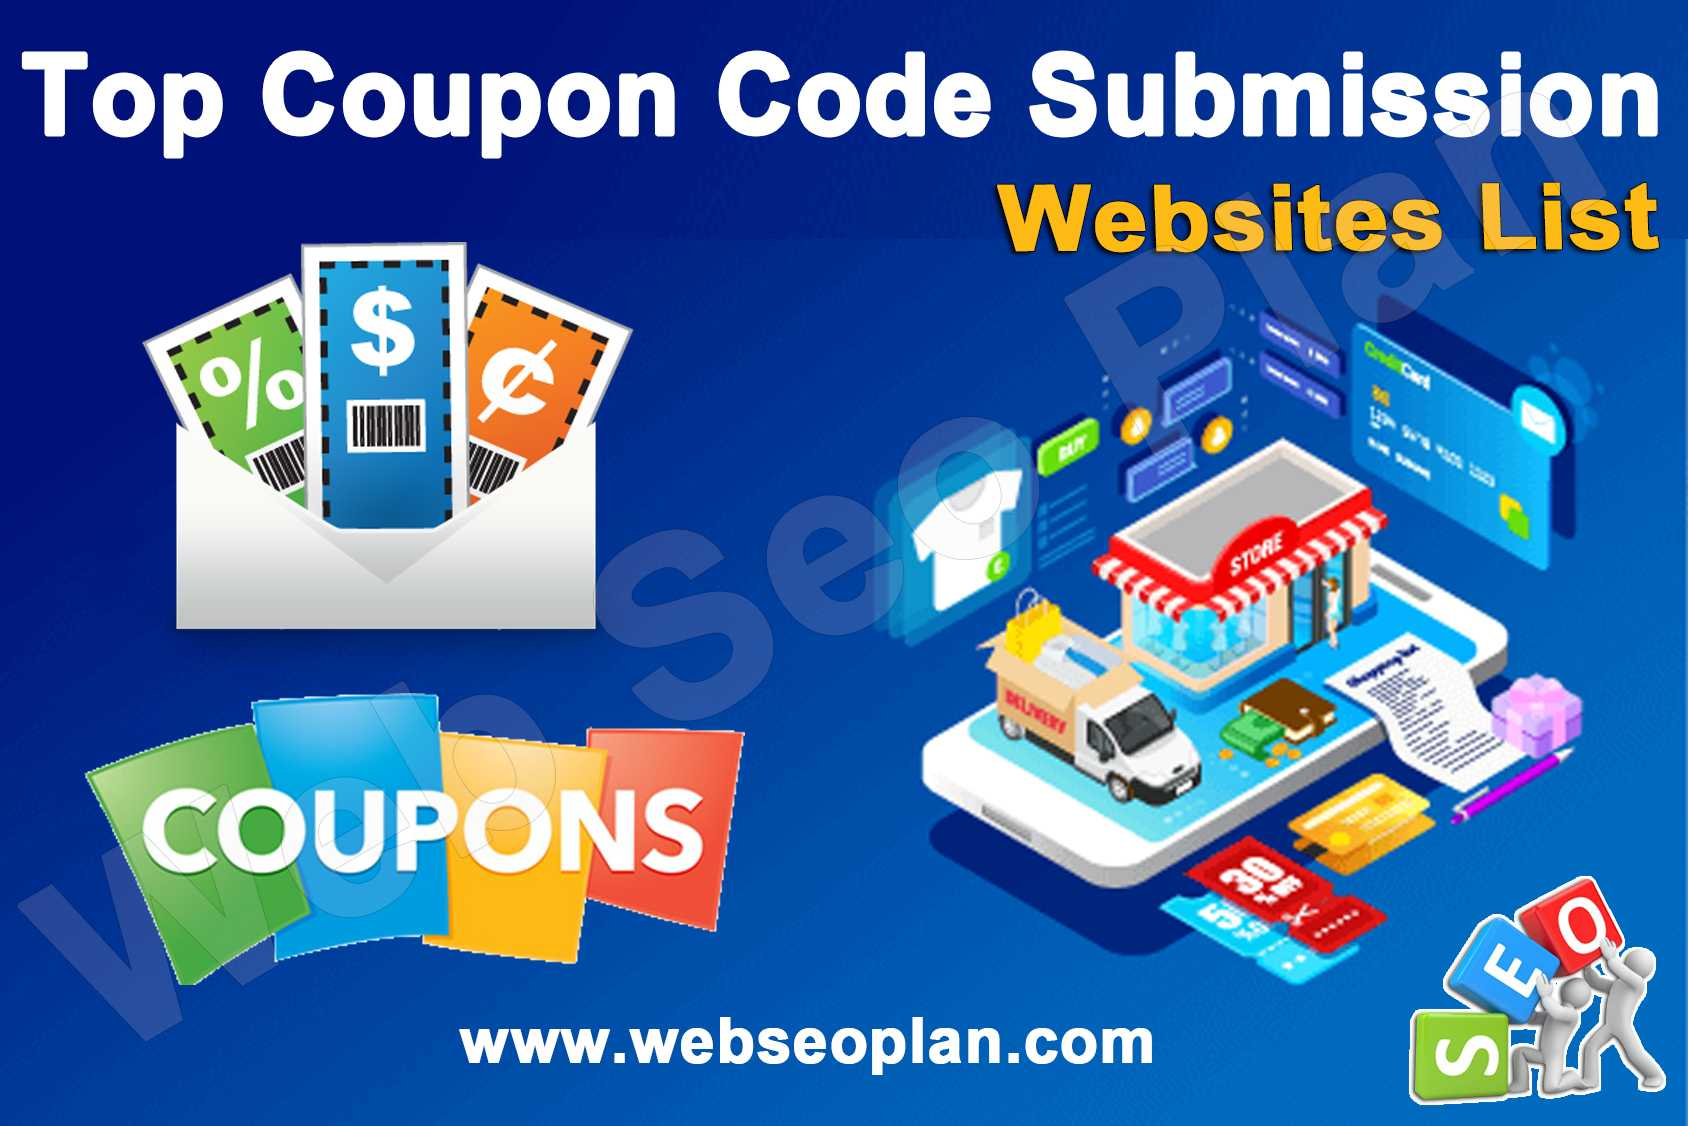 Top Coupon Code Submission Site List